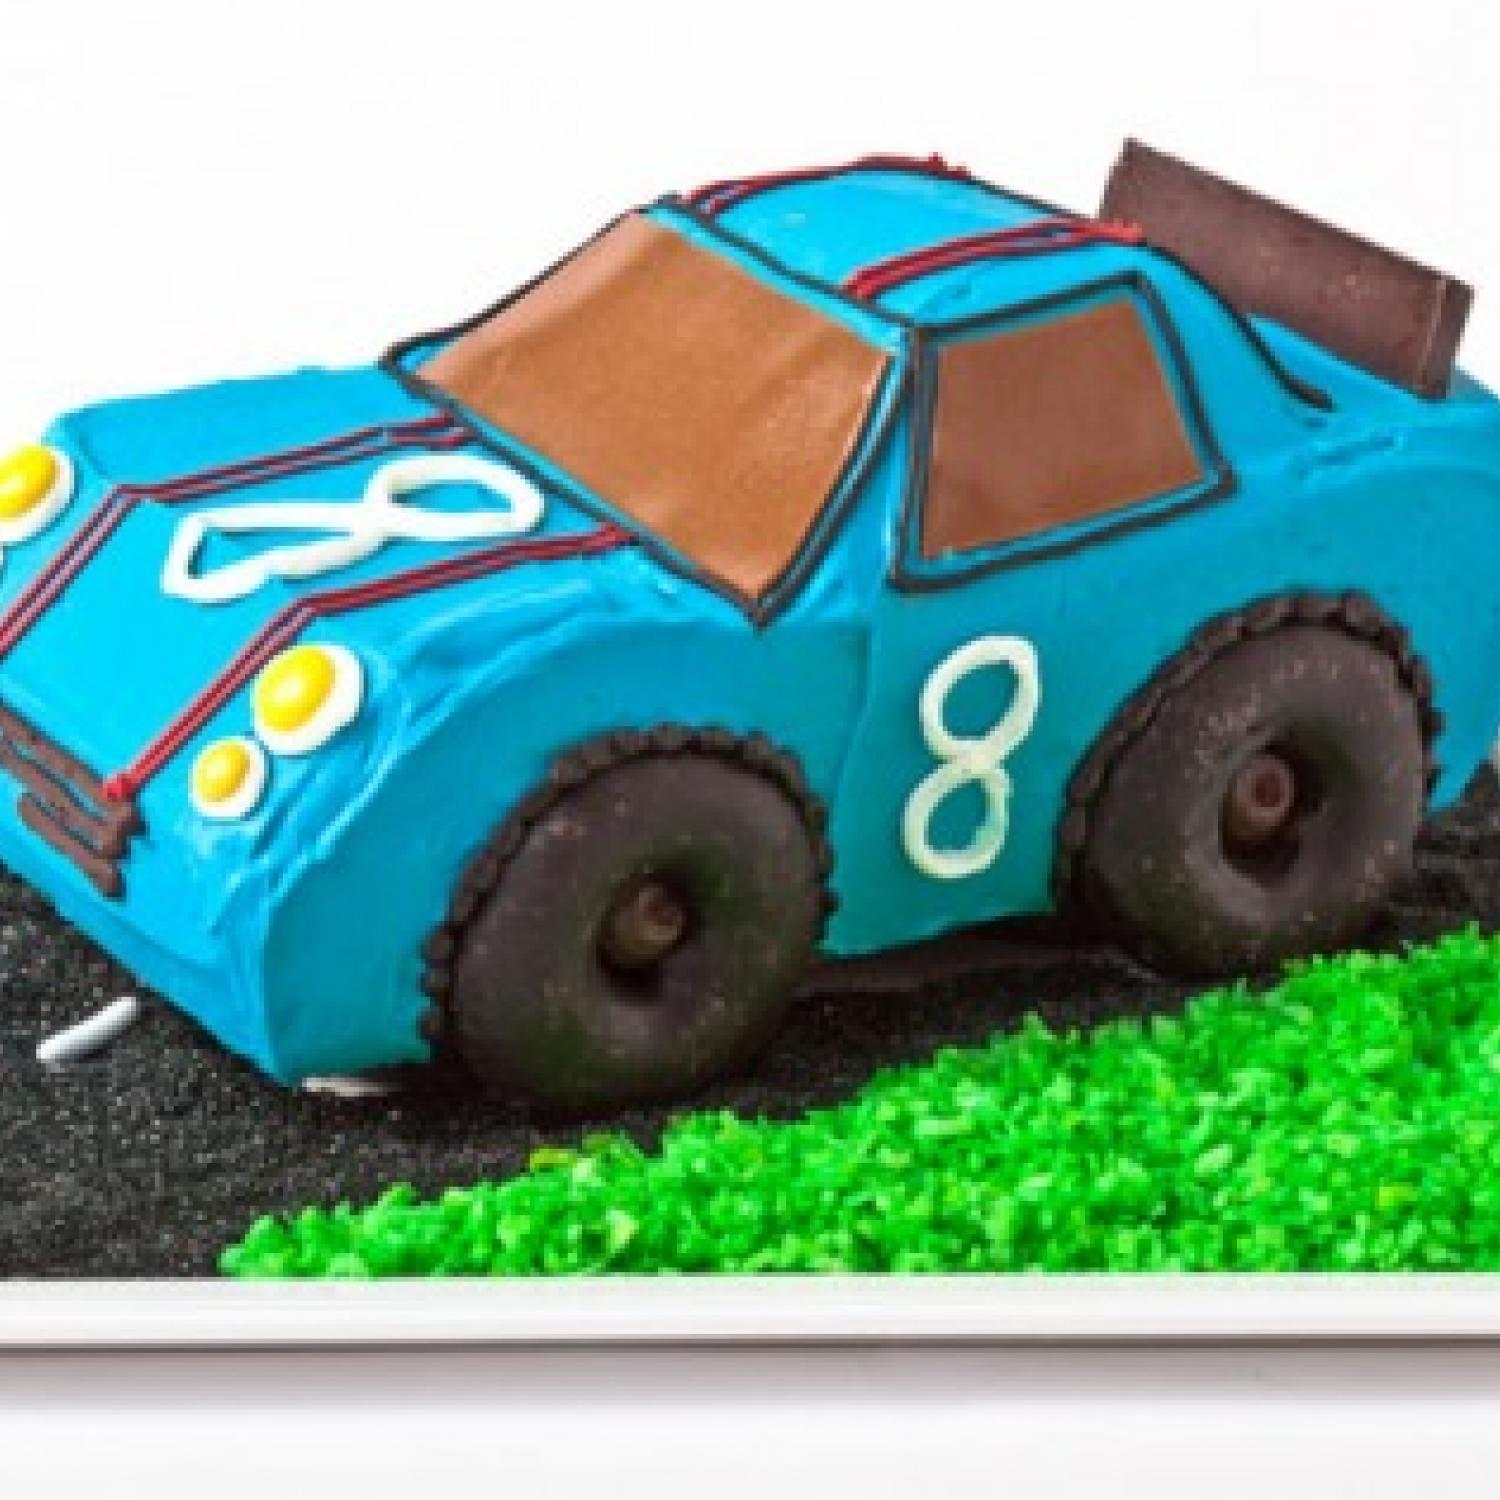 Cake Designs With Cars : Race Car Birthday Cake Design Parenting